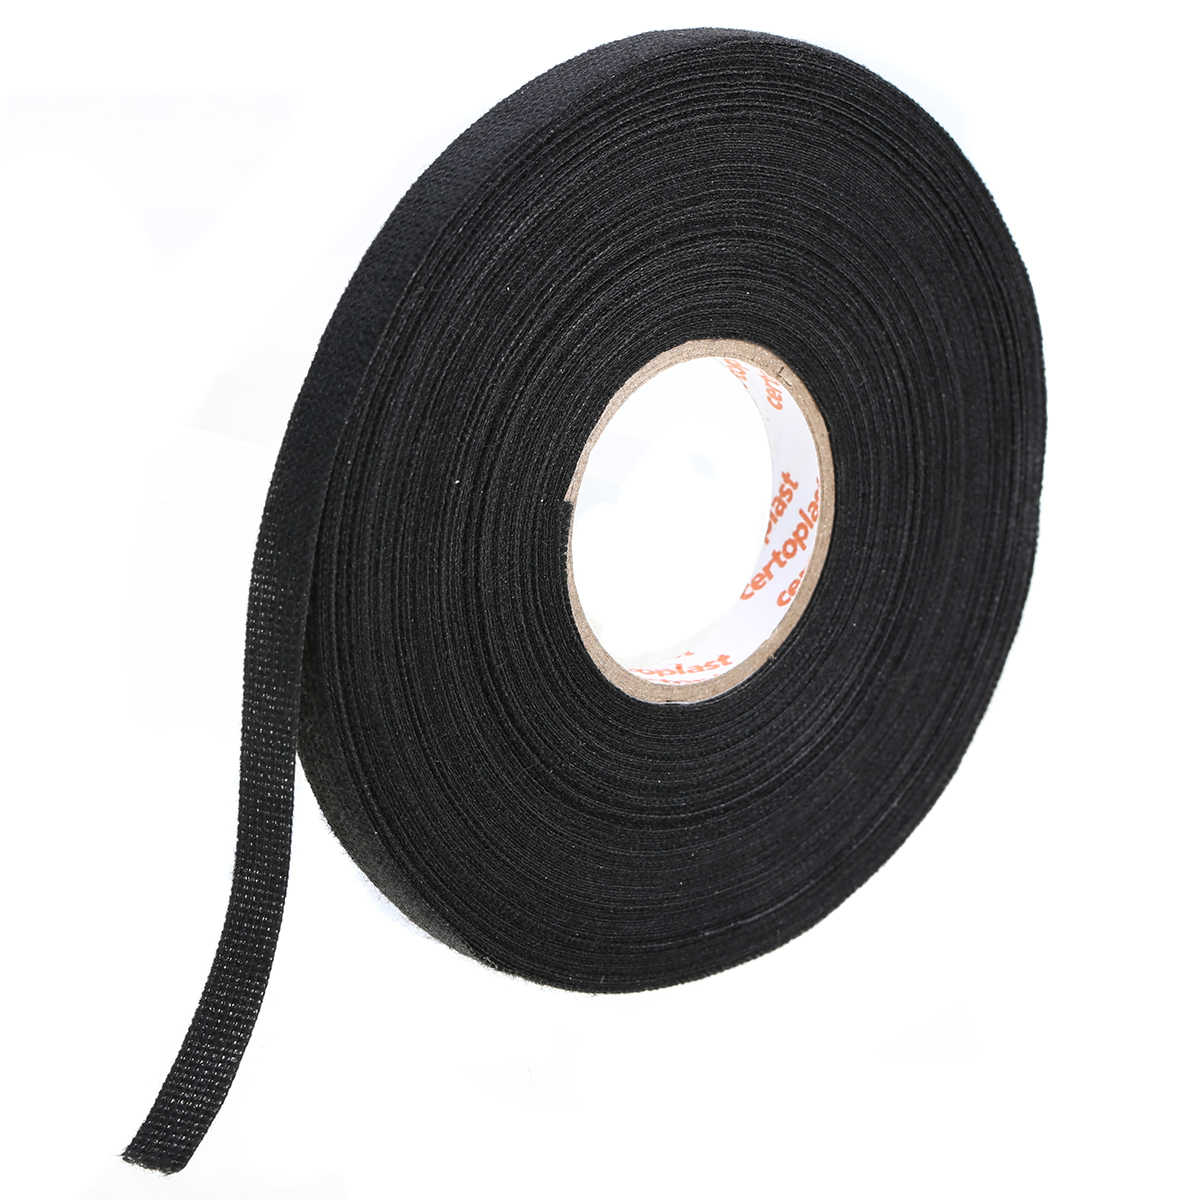 hight resolution of  1pc black anti wear adhesive cloth fabric tape looms wiring harness tape 25m x 9mm